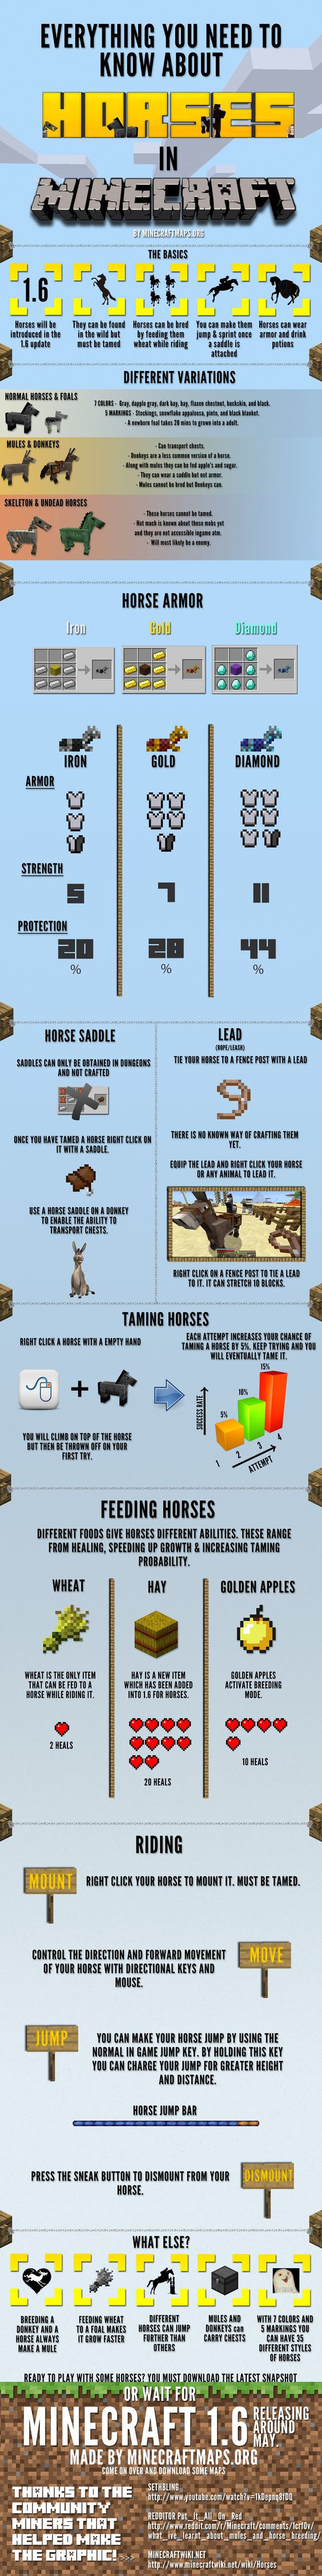 Everything you need to know about horses in Minecraft 1.6!